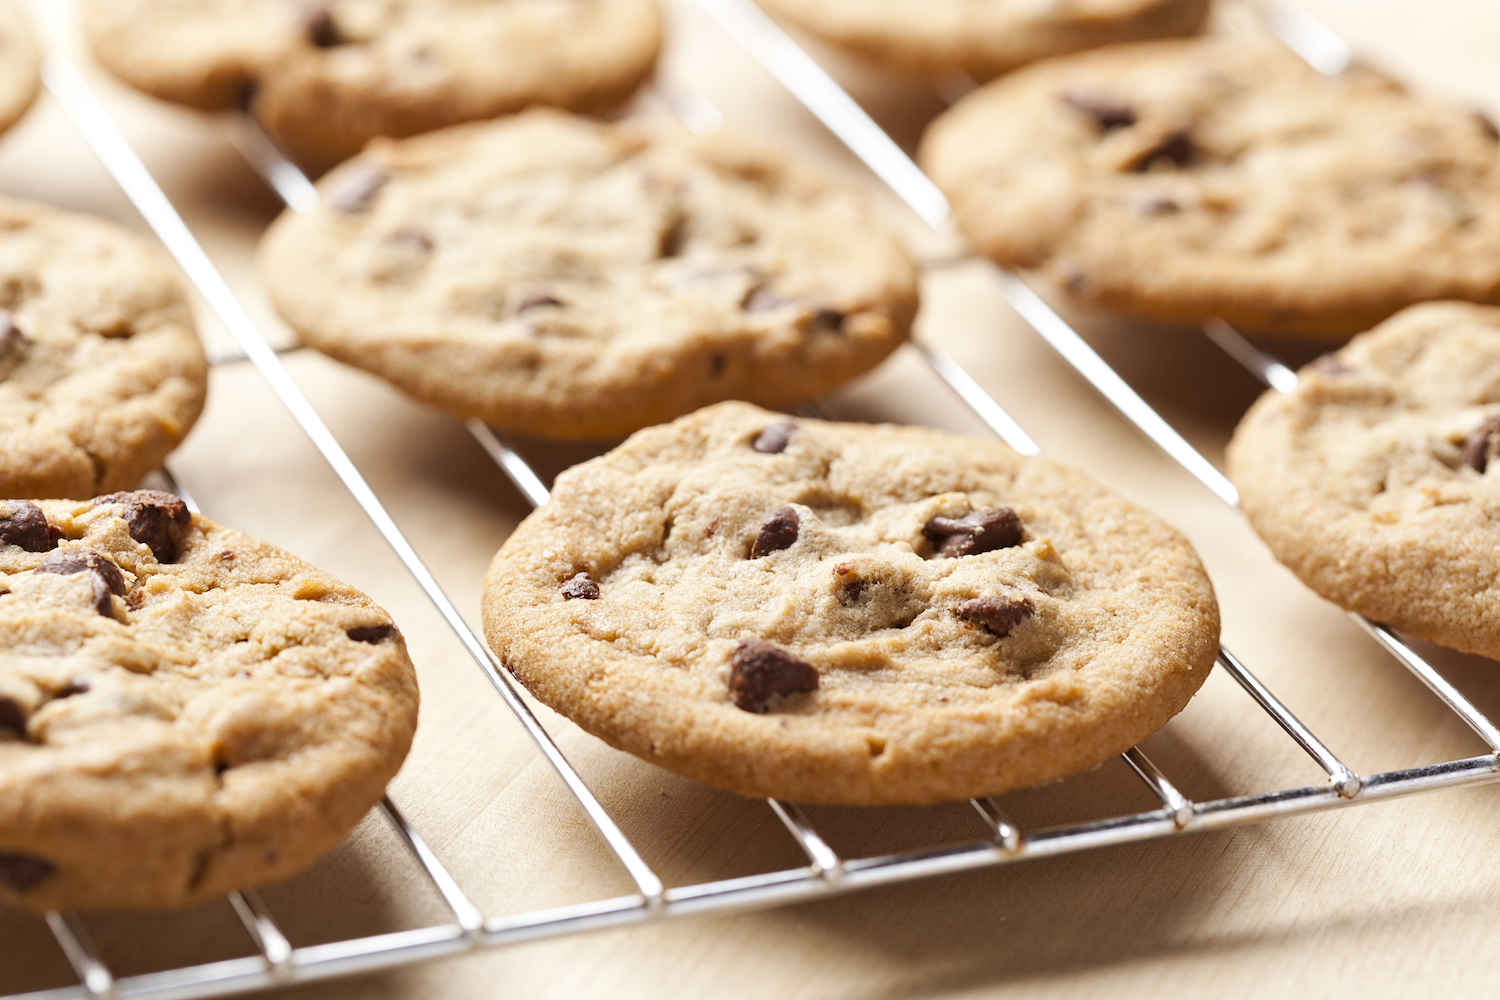 And the most searched-for cookies in each state are... *drumroll*